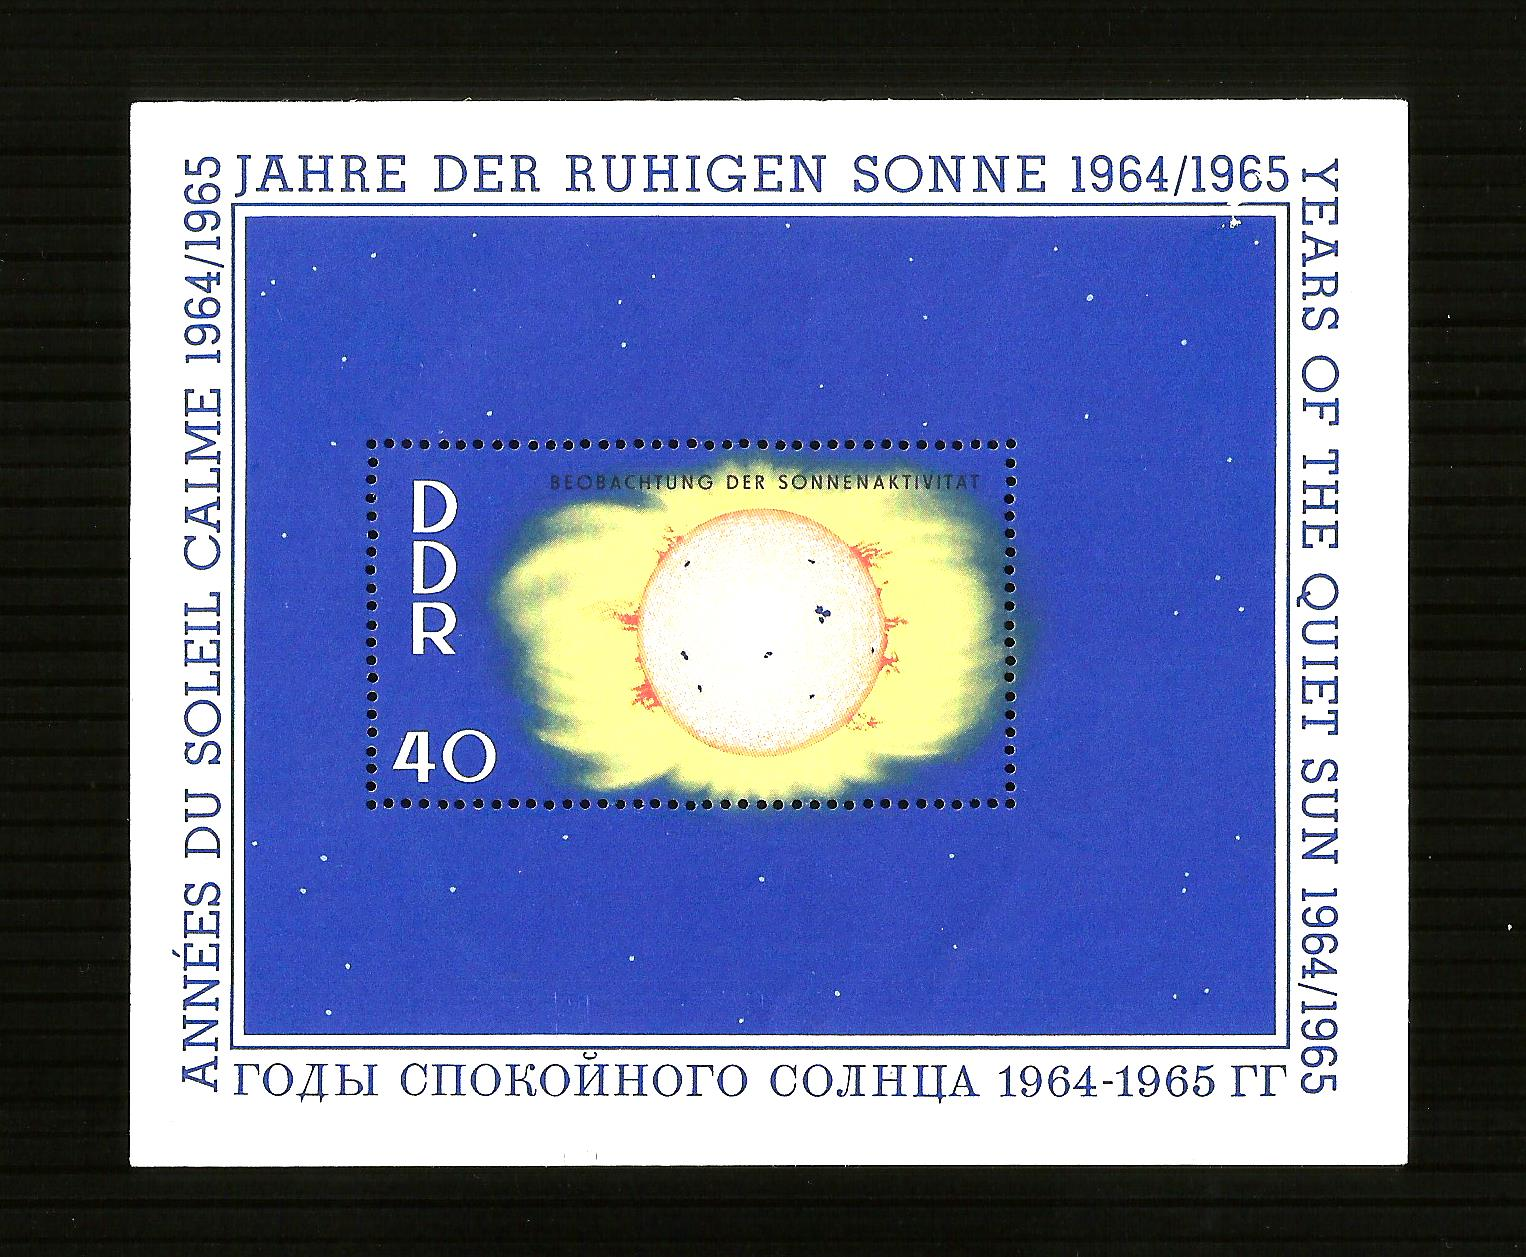 GERMANY - 1965 YEARS OF THE QUIET SUN - MIN. SHEET MINT NH